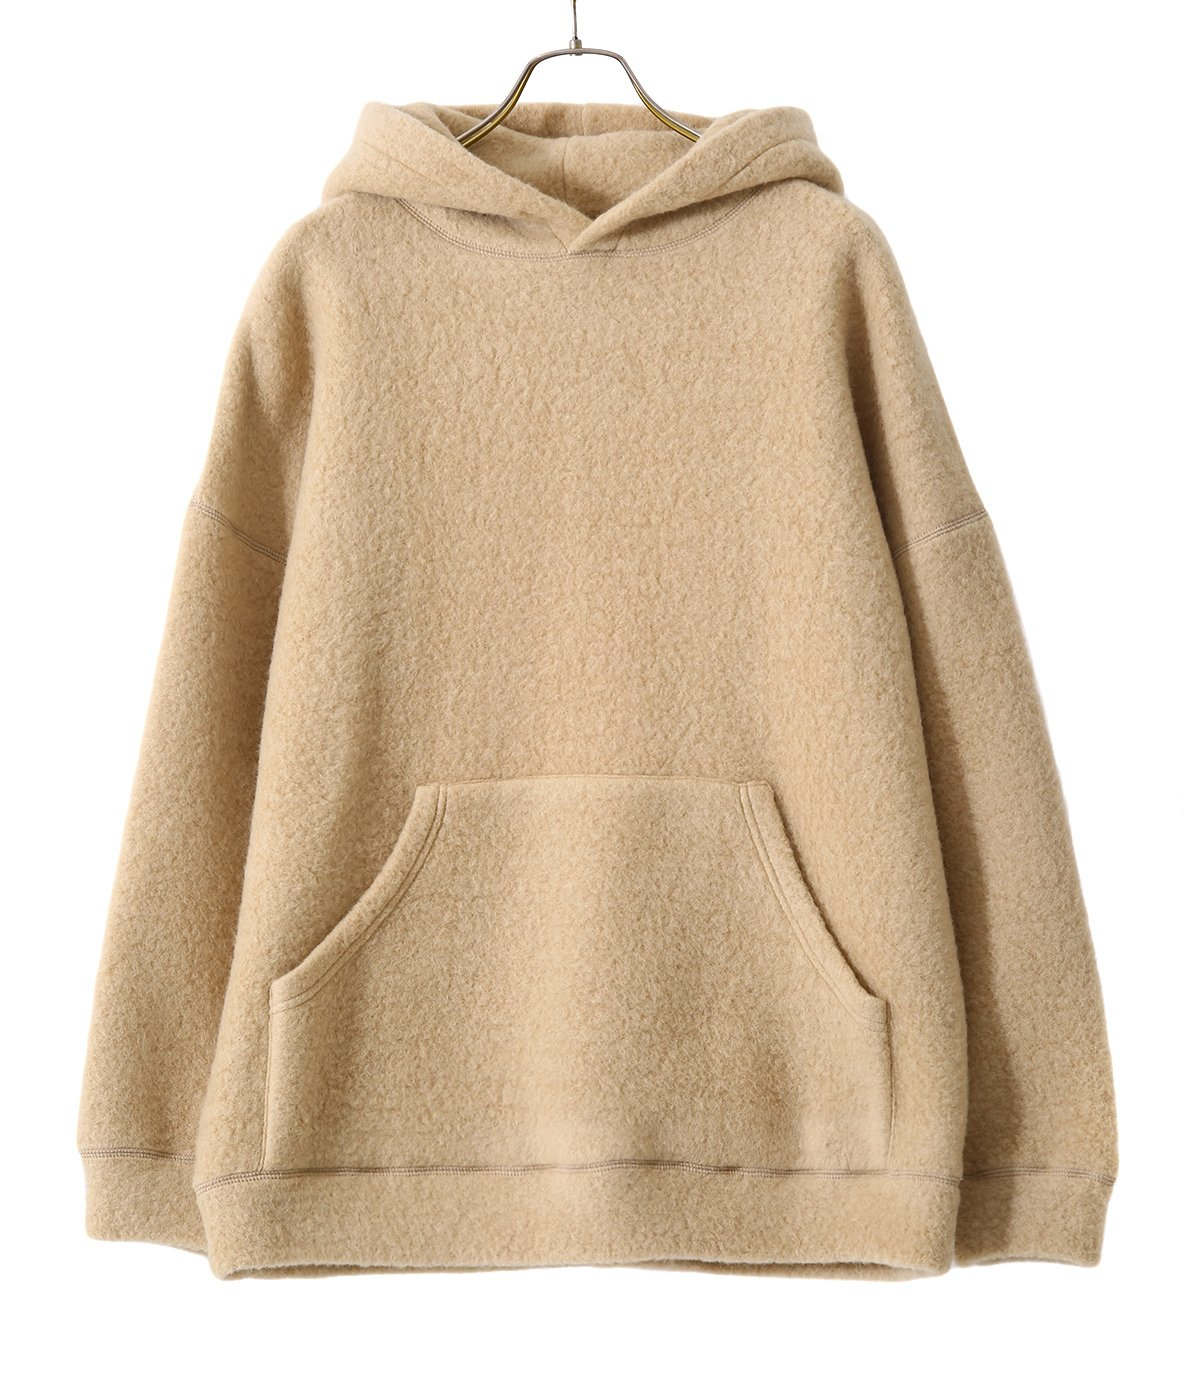 【予約】BOUCLE WOOL KNIT BIG POCKET PULLOVER PARKA